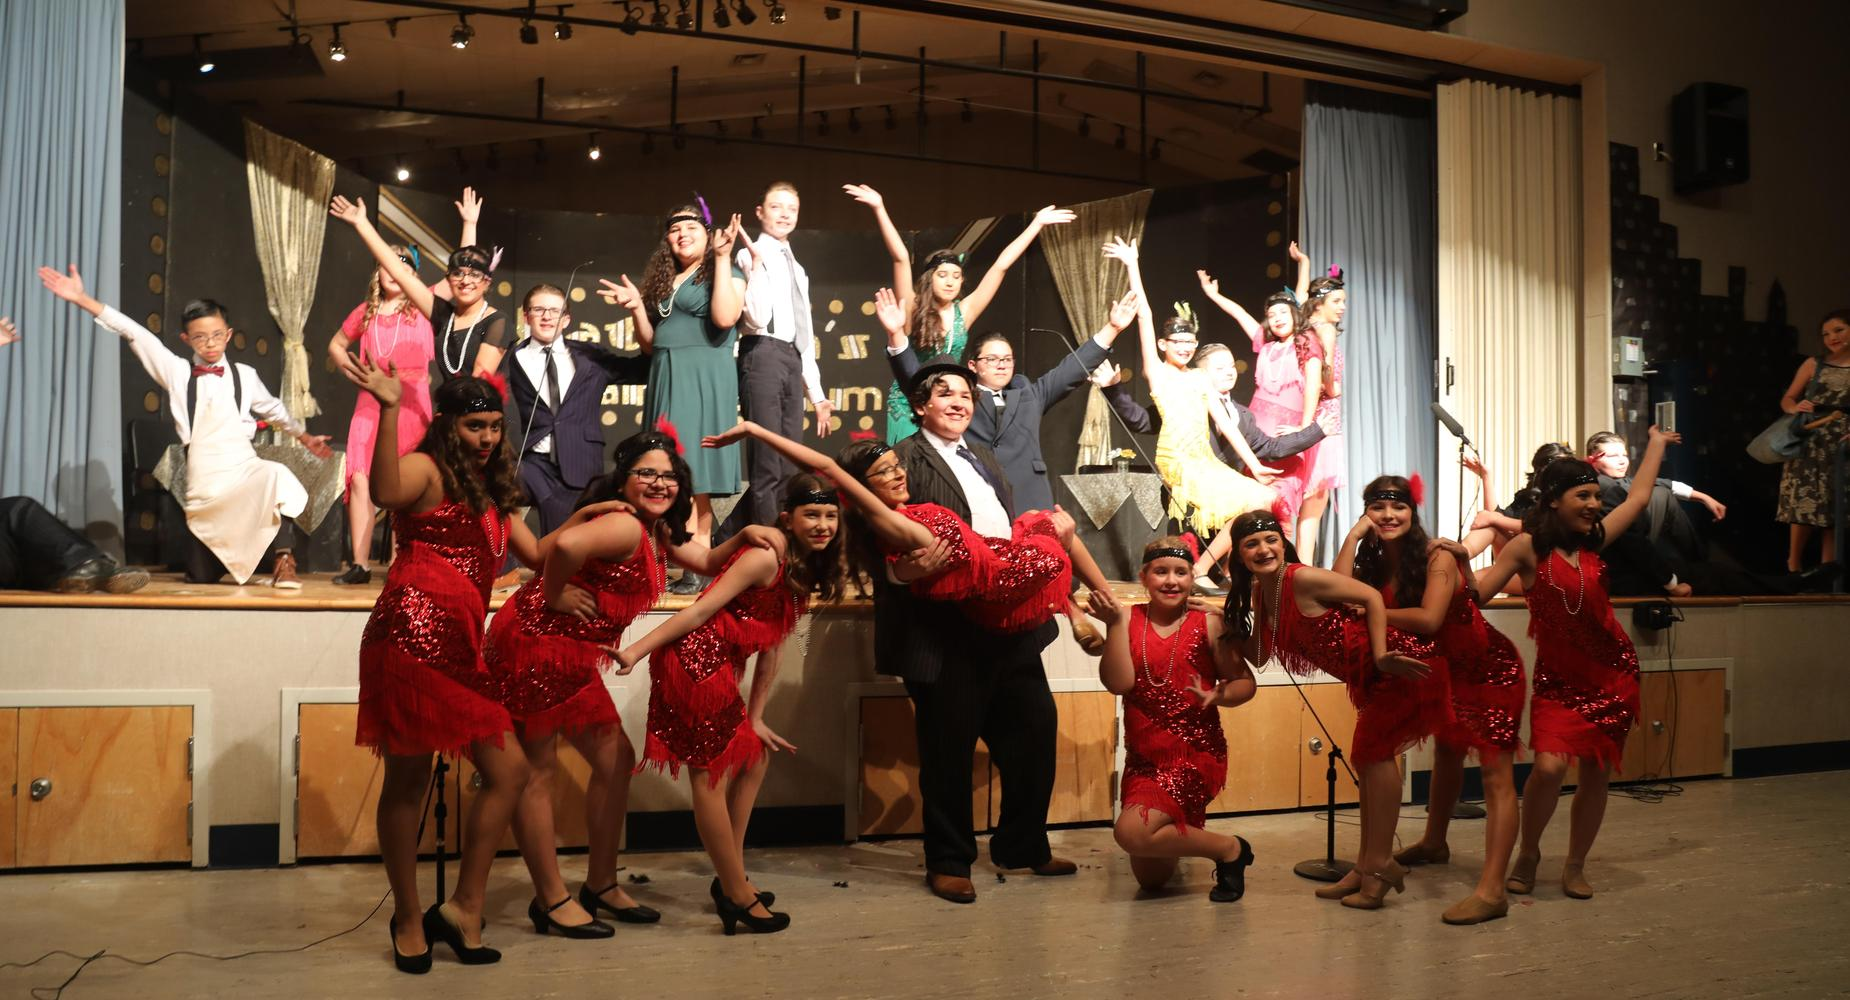 Bugsy Malone cast posing for play finale